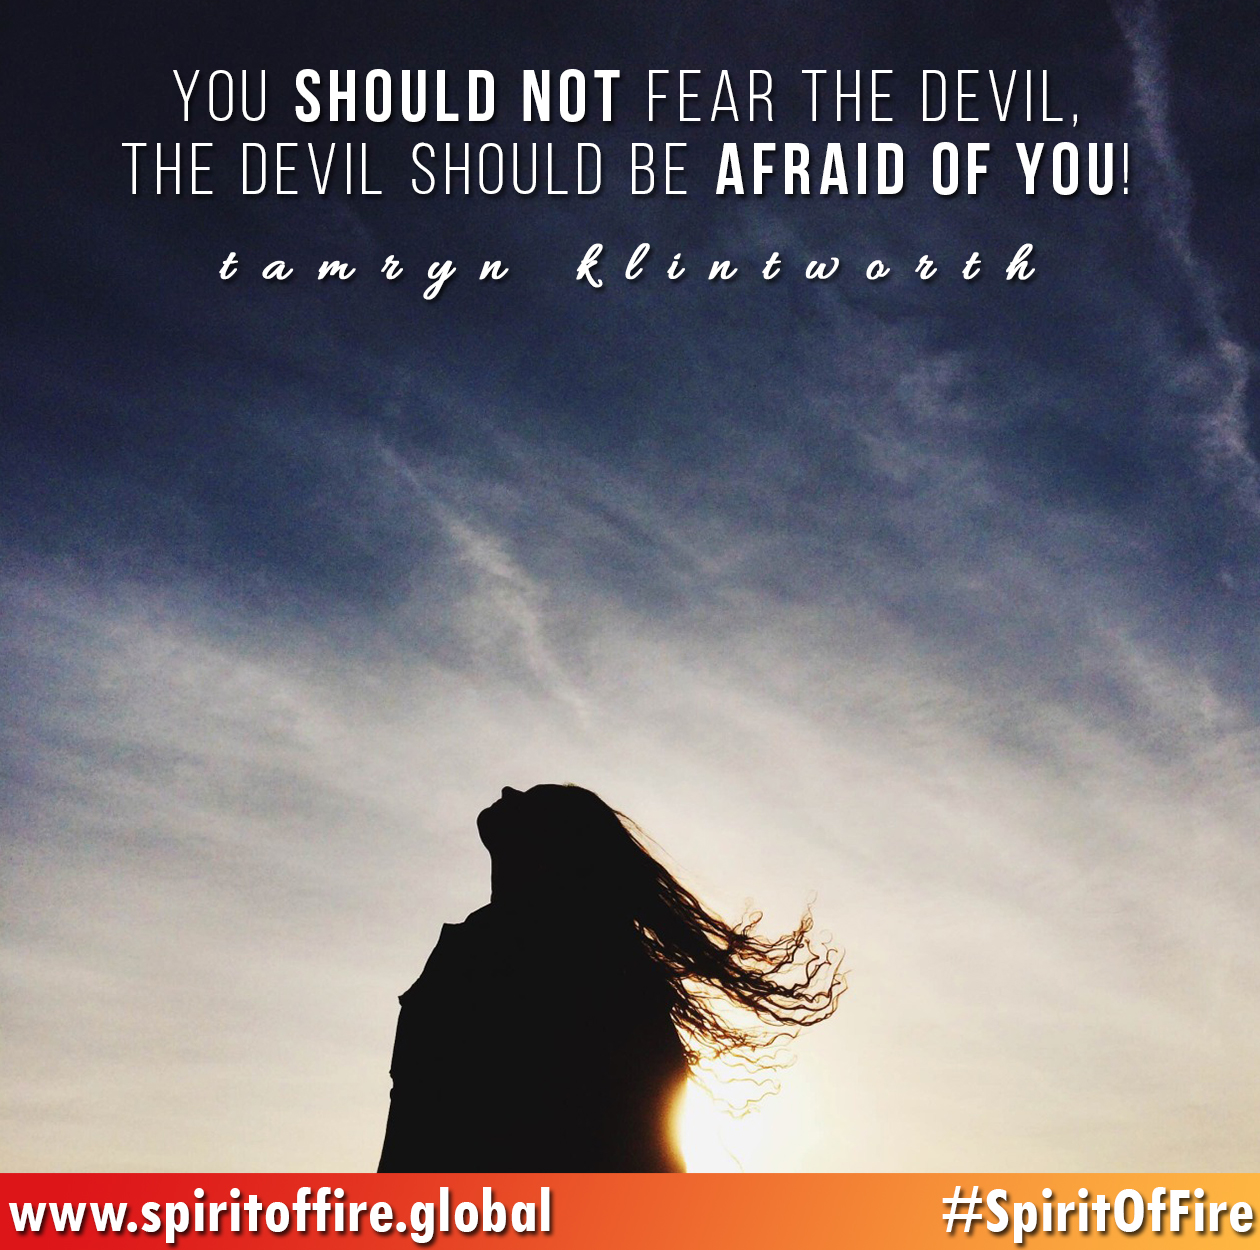 the-devil-should-be-afraid-of-you